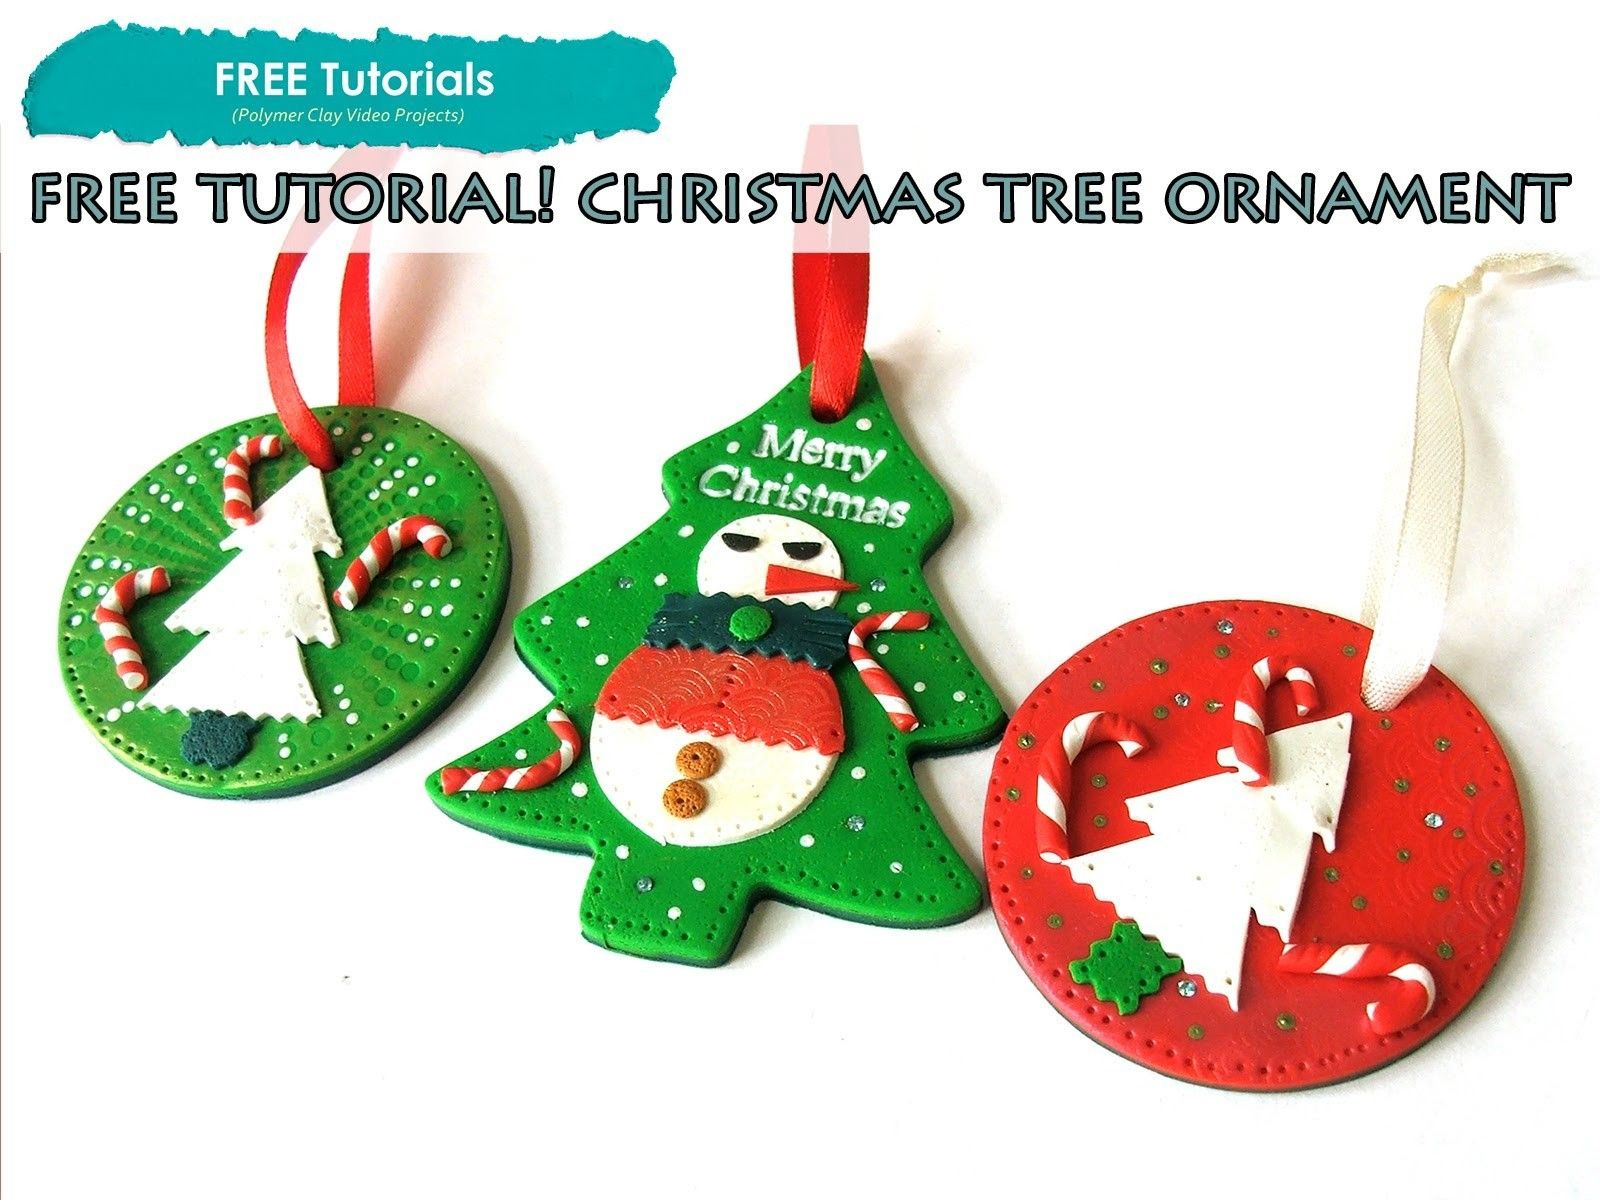 Polypediaonline Tv Free How To Polymer Clay Christmas Snoman Tree Ornaments Tutorial Polymer Clay Christmas Christmas Clay Ornament Tutorial